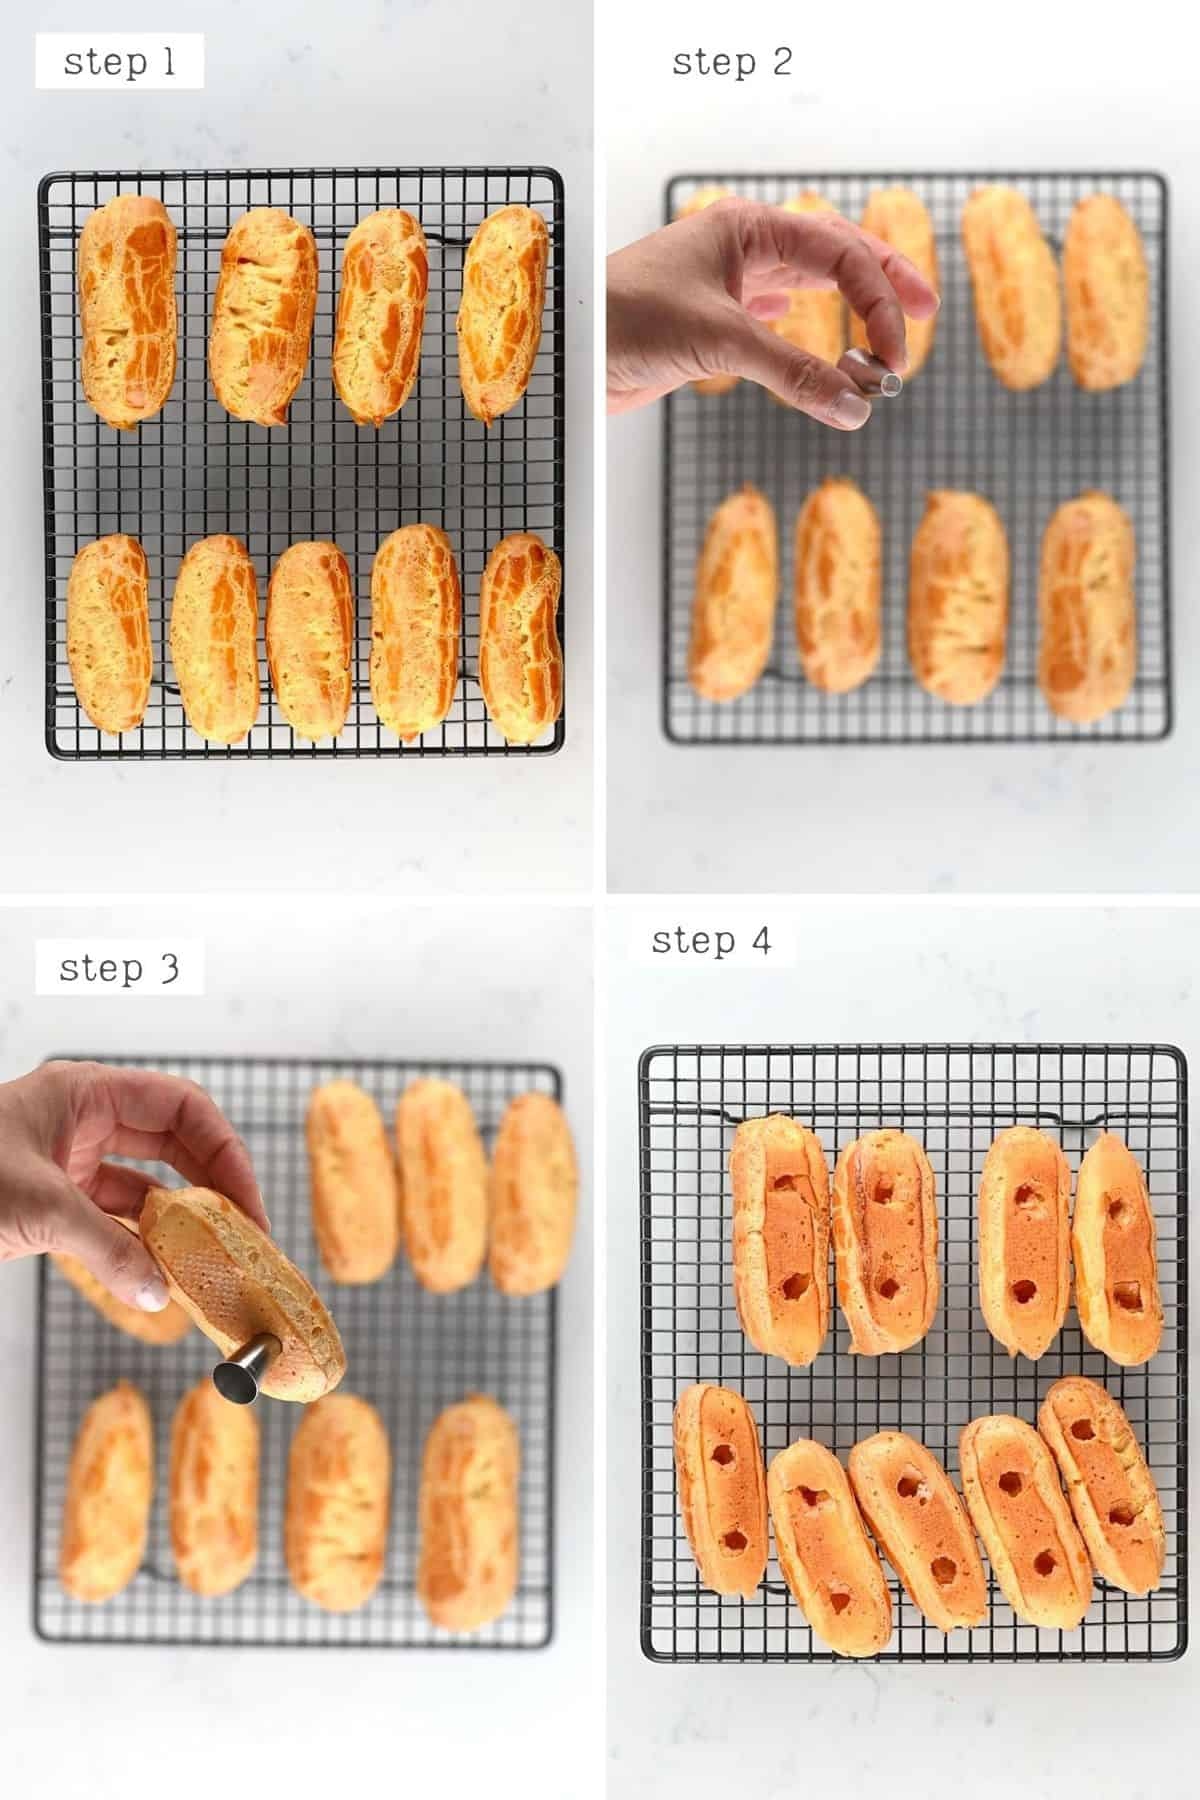 Steps for filling an eclair